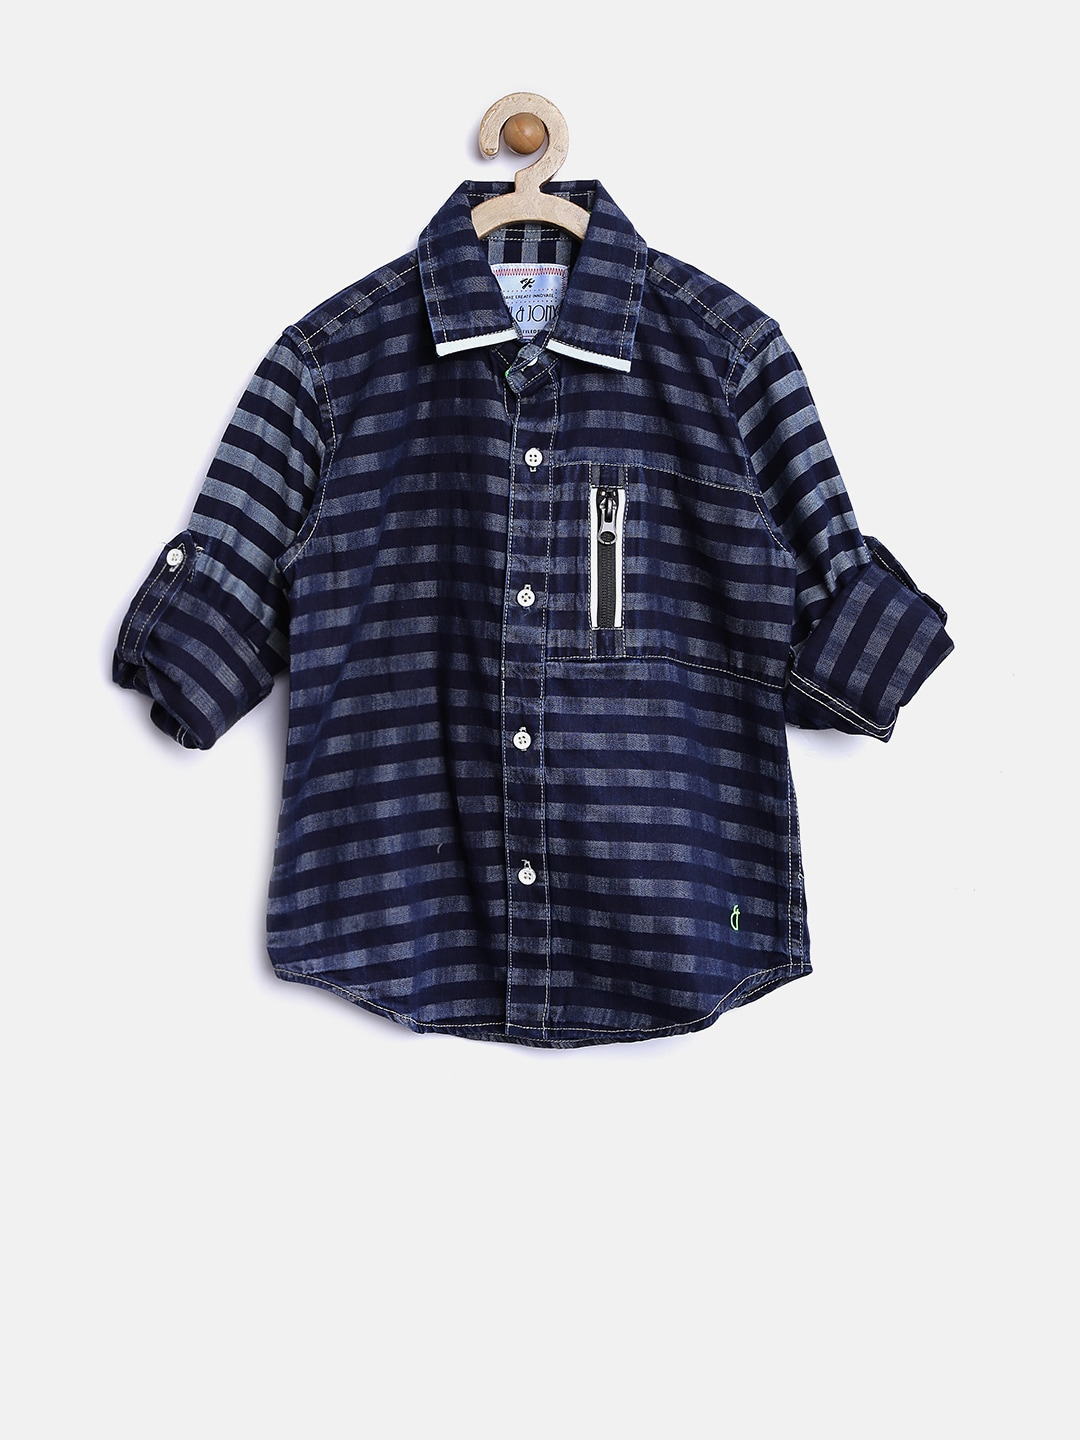 Shirt design boy 2016 - Gini And Jony Exclusive Gini And Jony Online Store In India At Myntra